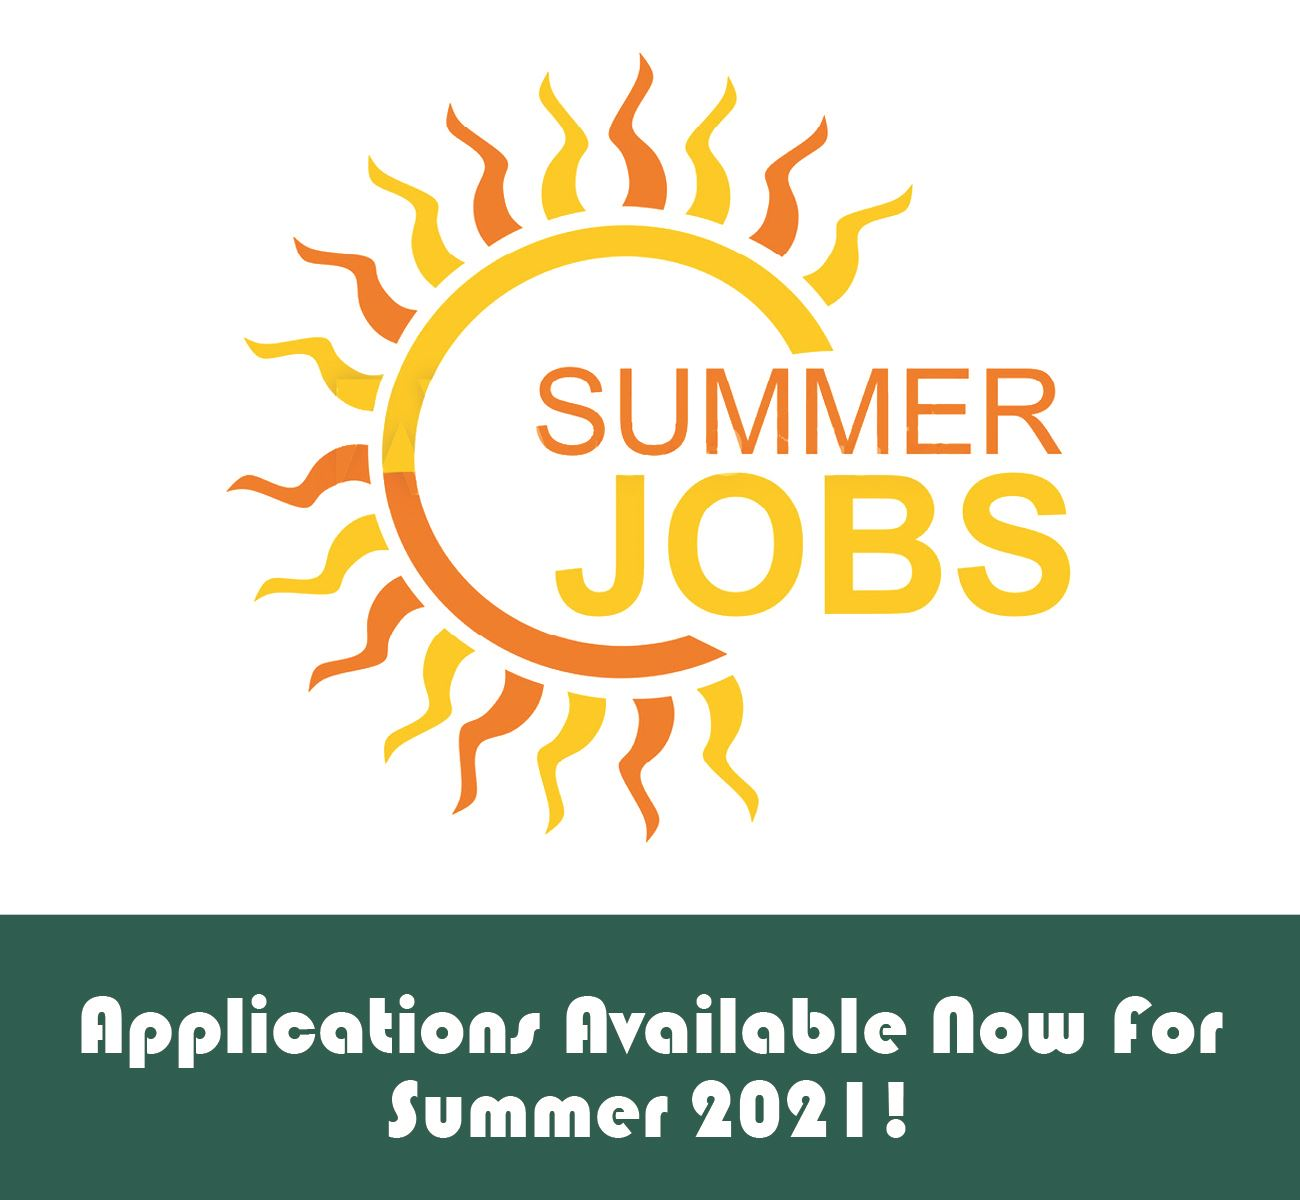 Parks and rec Summer jobs 2021